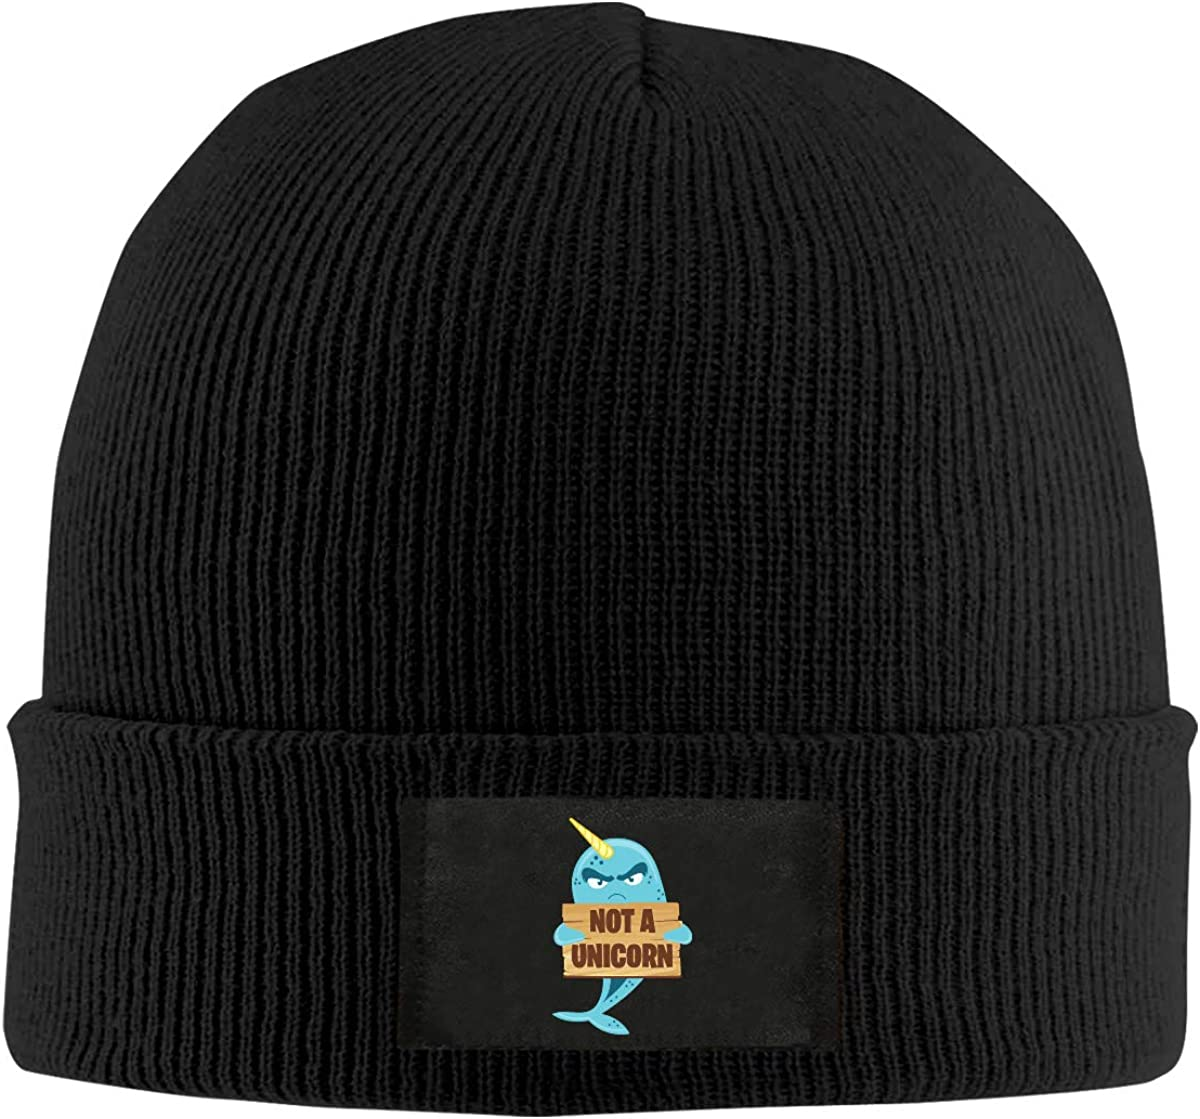 Not A Unicorn Funny Narwhal Fish Sea Unisex Knitted Hat Fashion Warm Beanie Cap